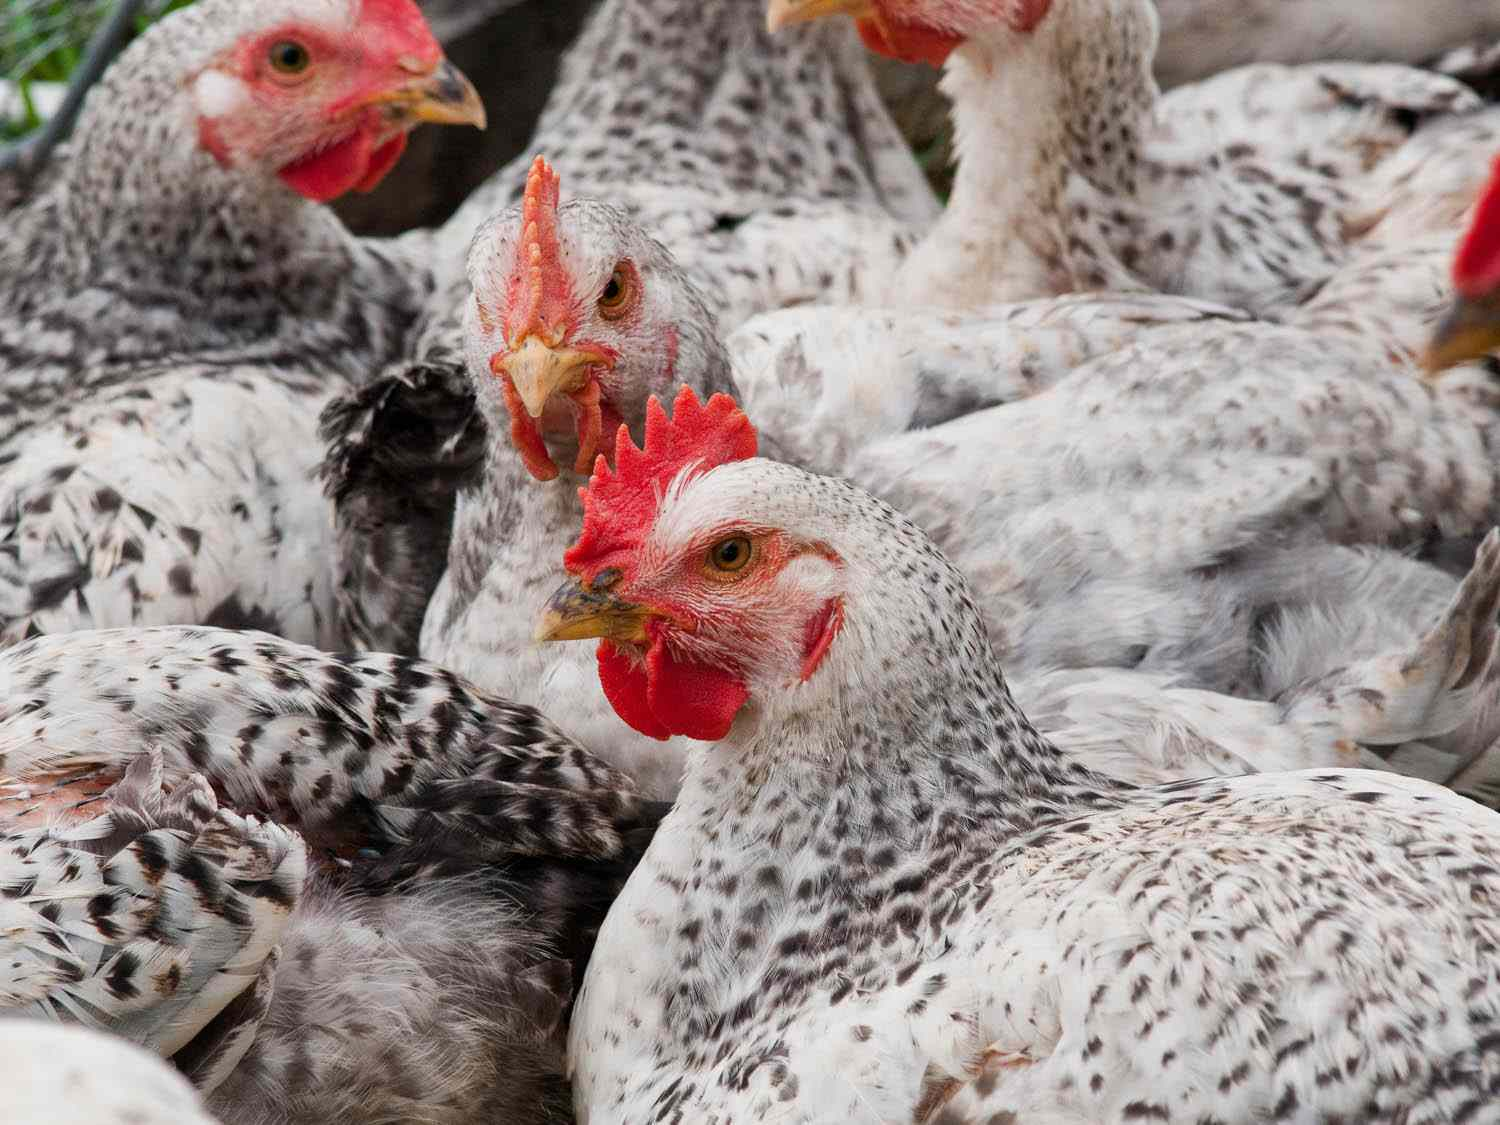 A group of live chickens at an industrial farm.